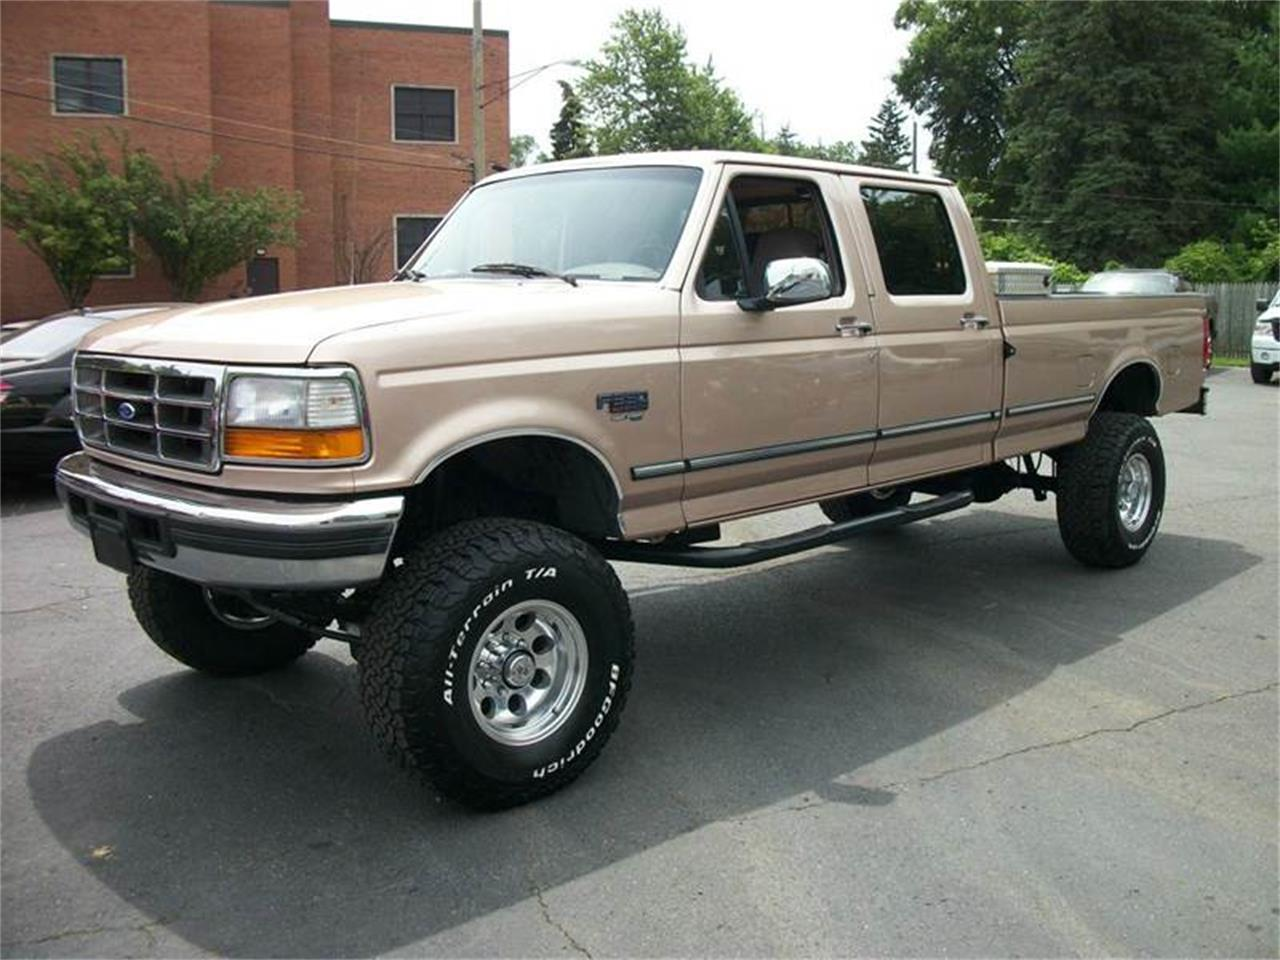 Large picture of 97 f350 lj2v